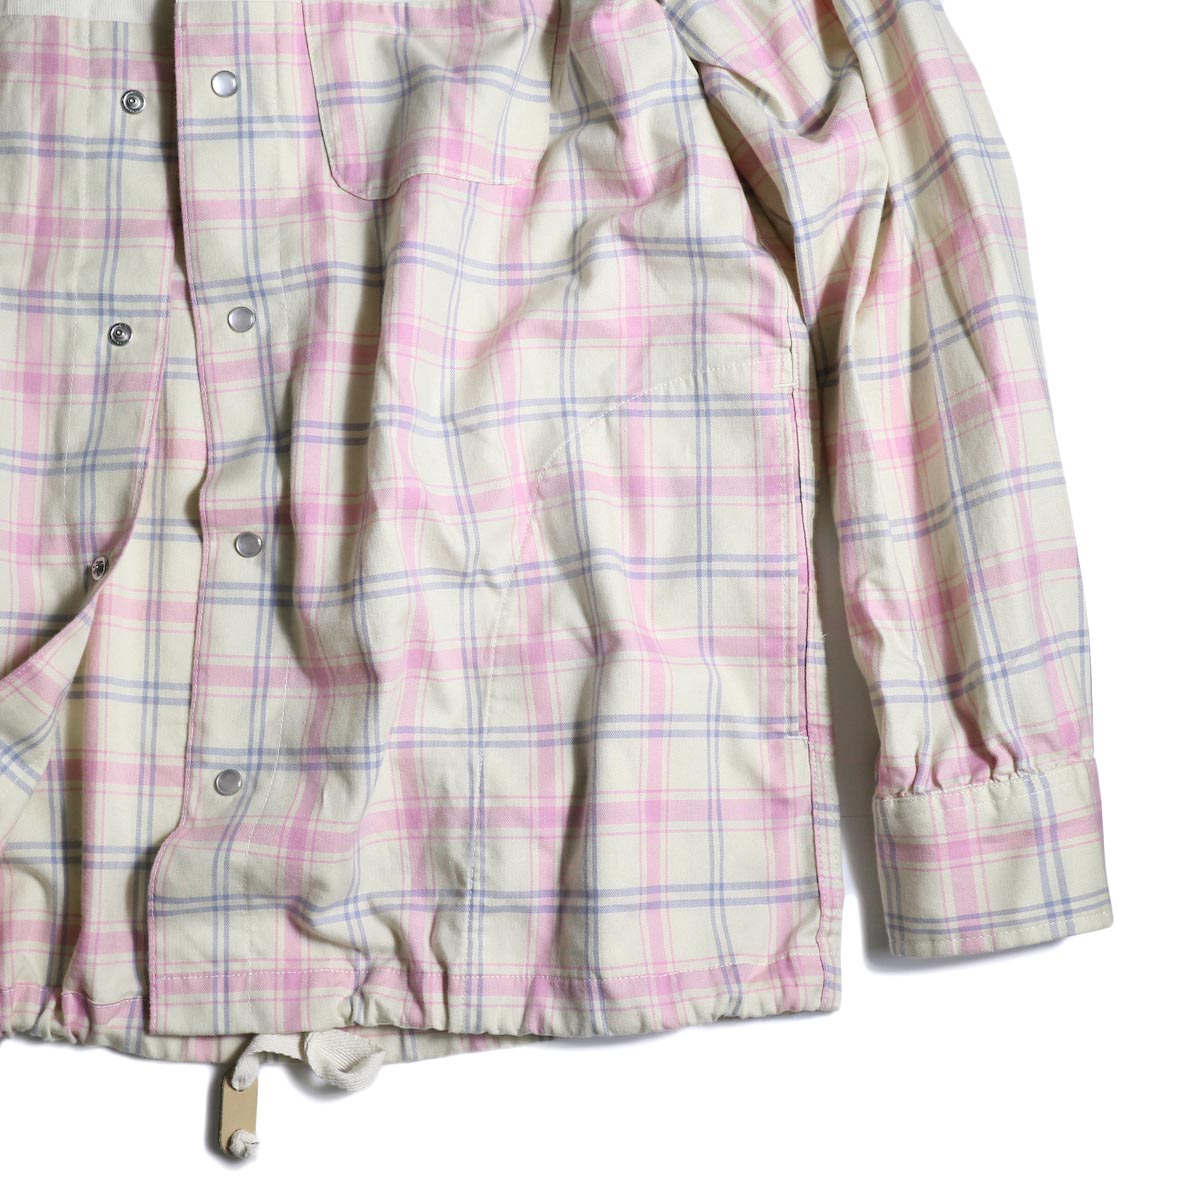 AiE / Coach Shirt -Cotton Plaid   袖、裾